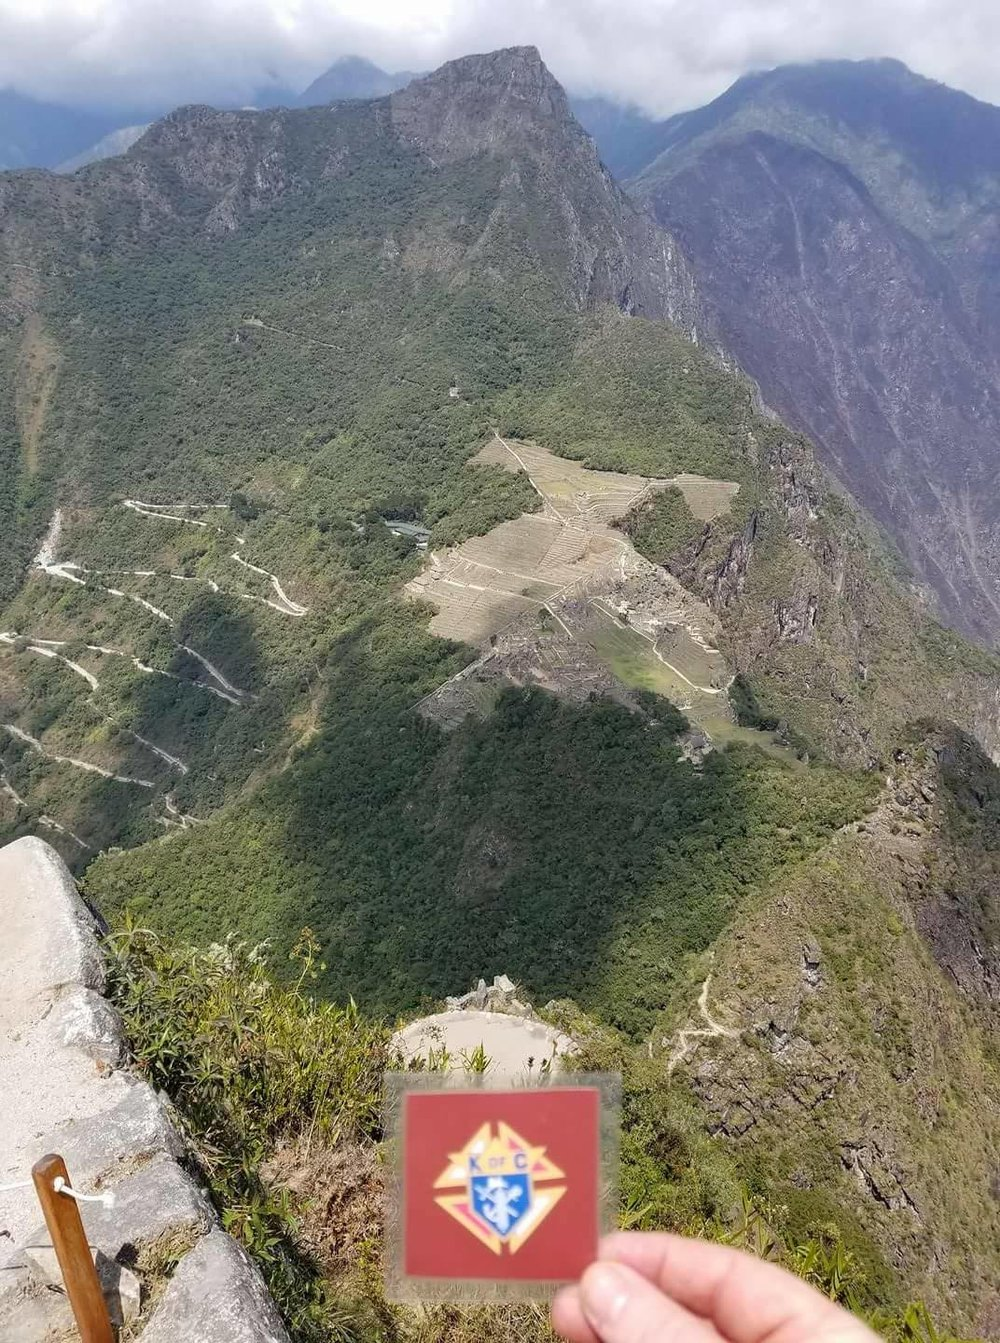 Stuart Brady vacationing in Machu Picchu